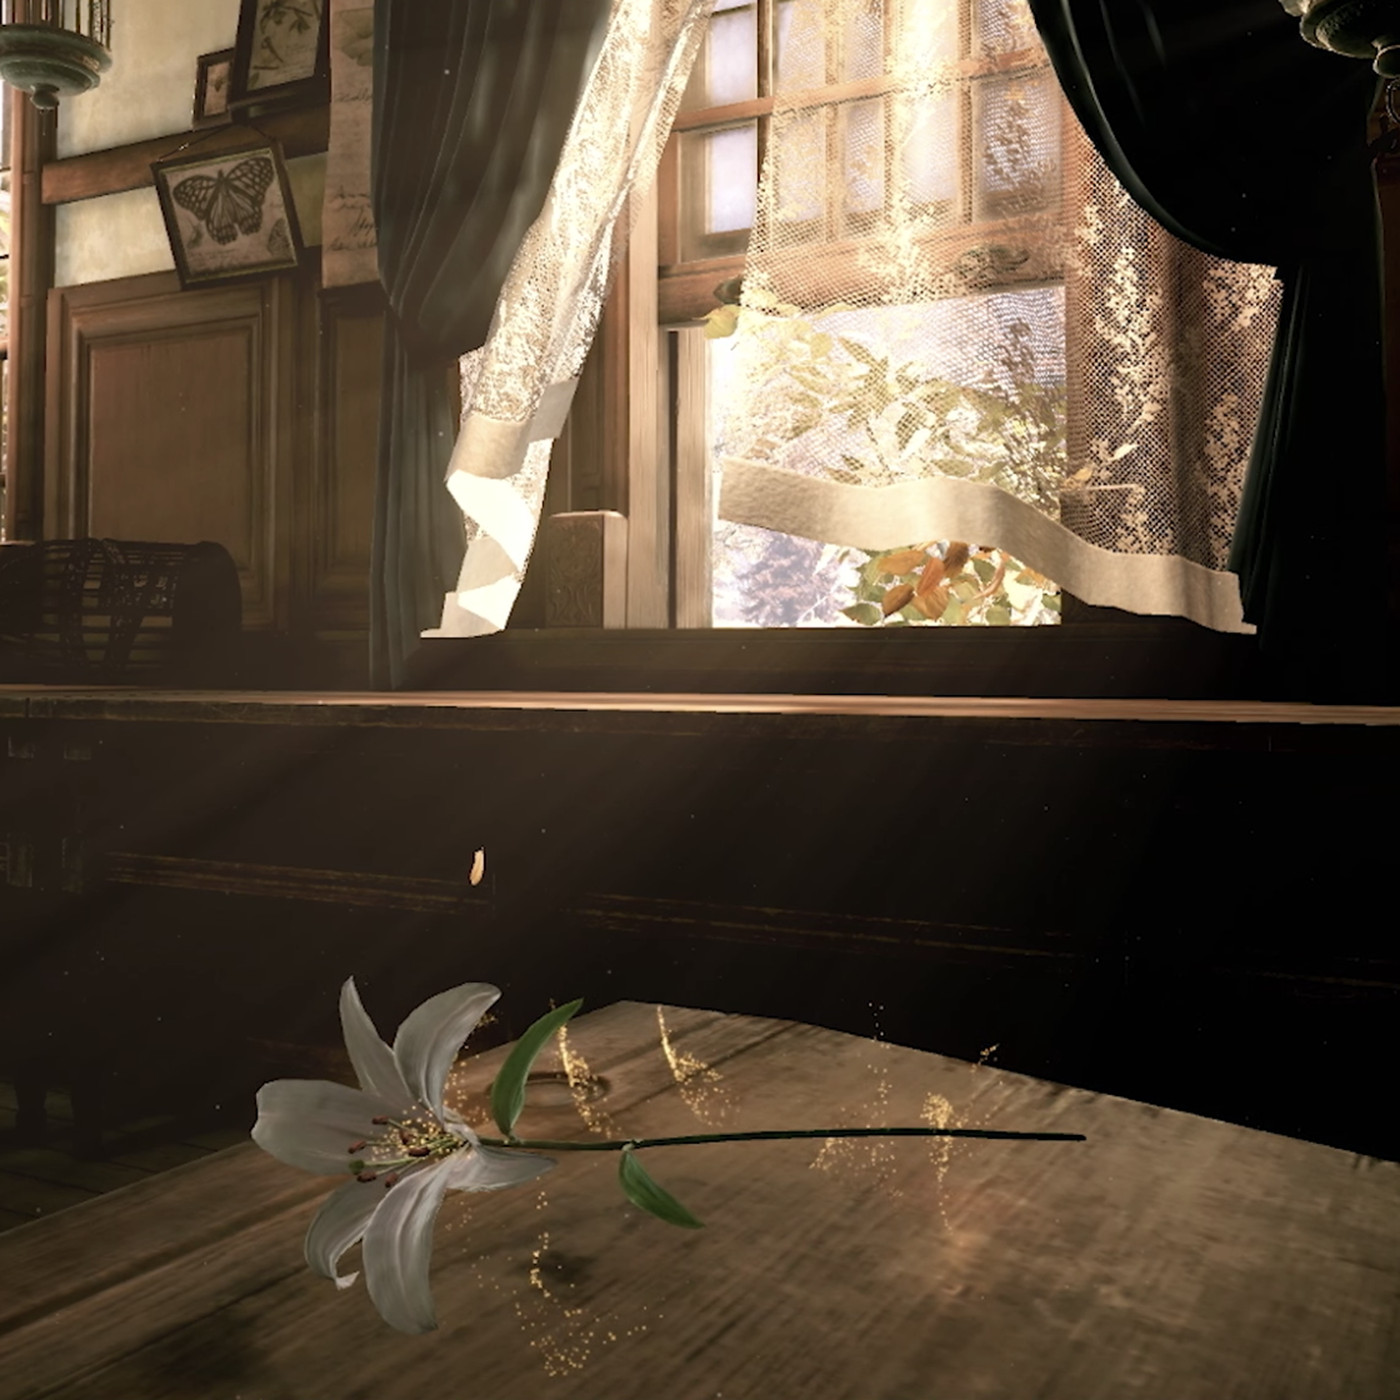 dark souls creator from software is making a vr game called déraciné